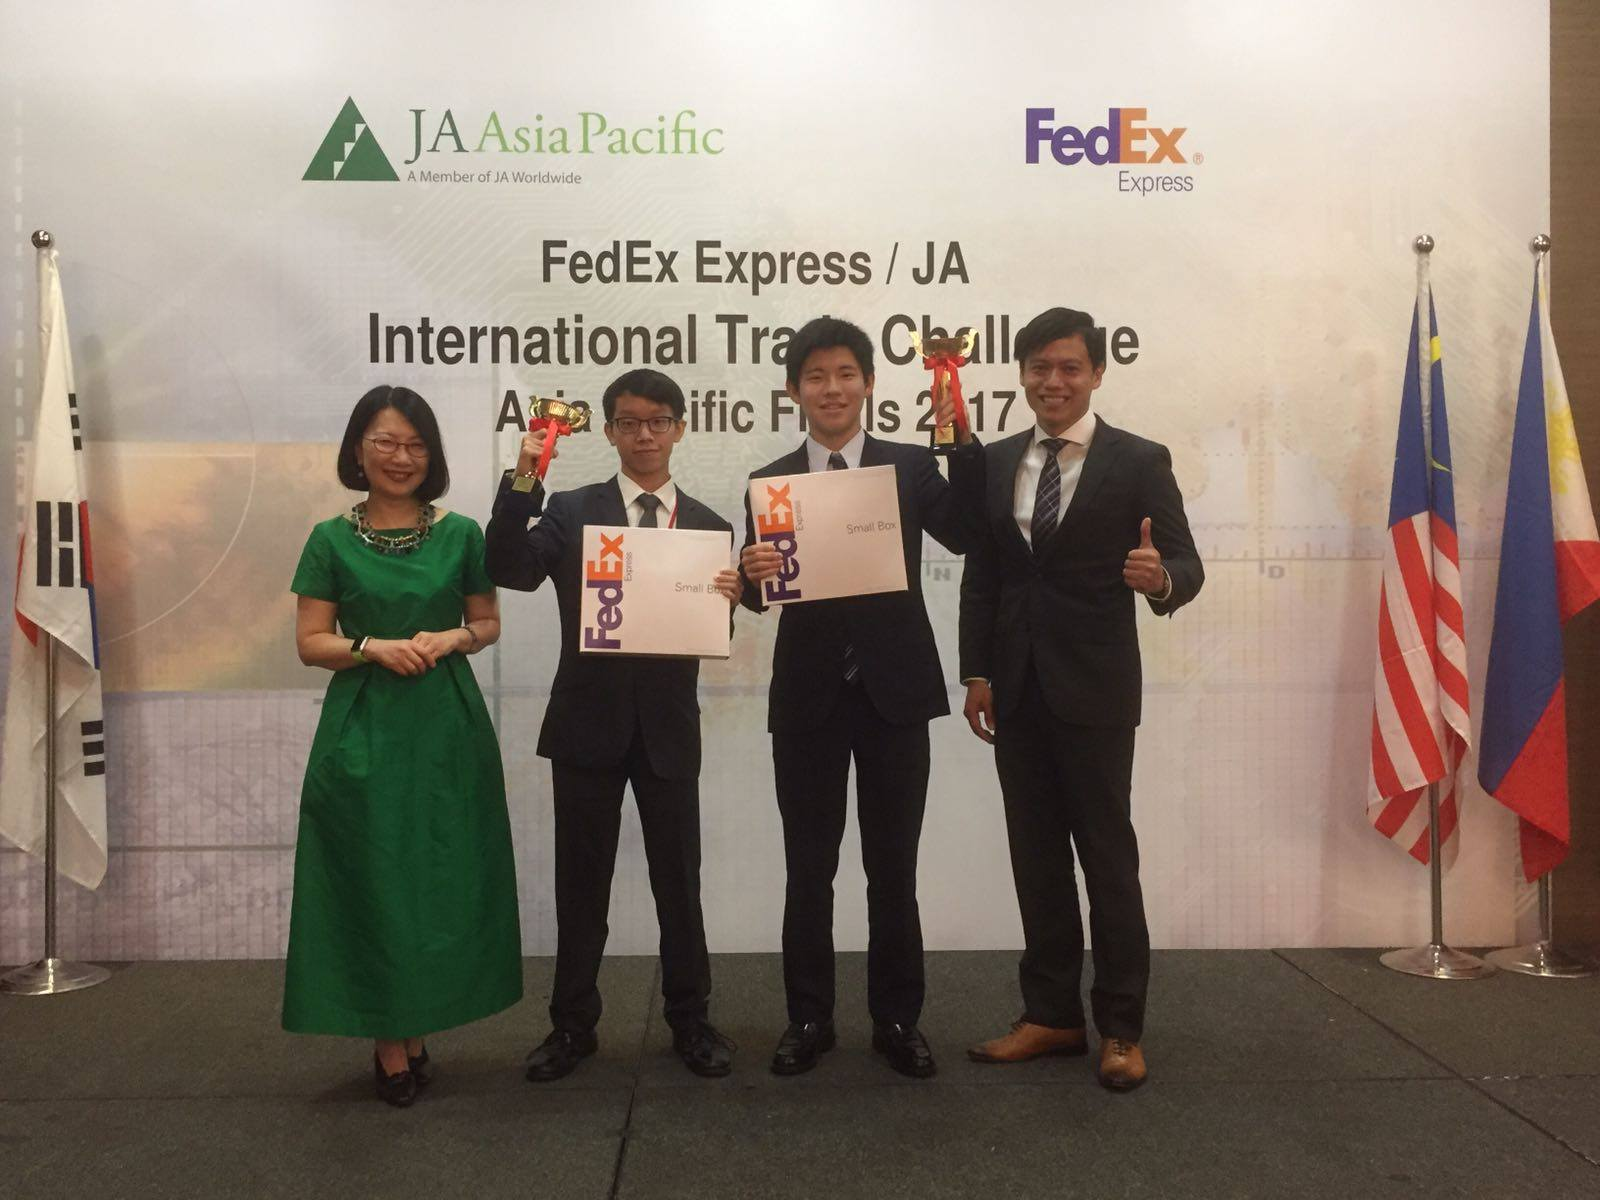 The third-prize winner is Team Collera: Kevin Ho from Hong Kong (second from left) and Taishi Nishizawa from Japan (second from right).